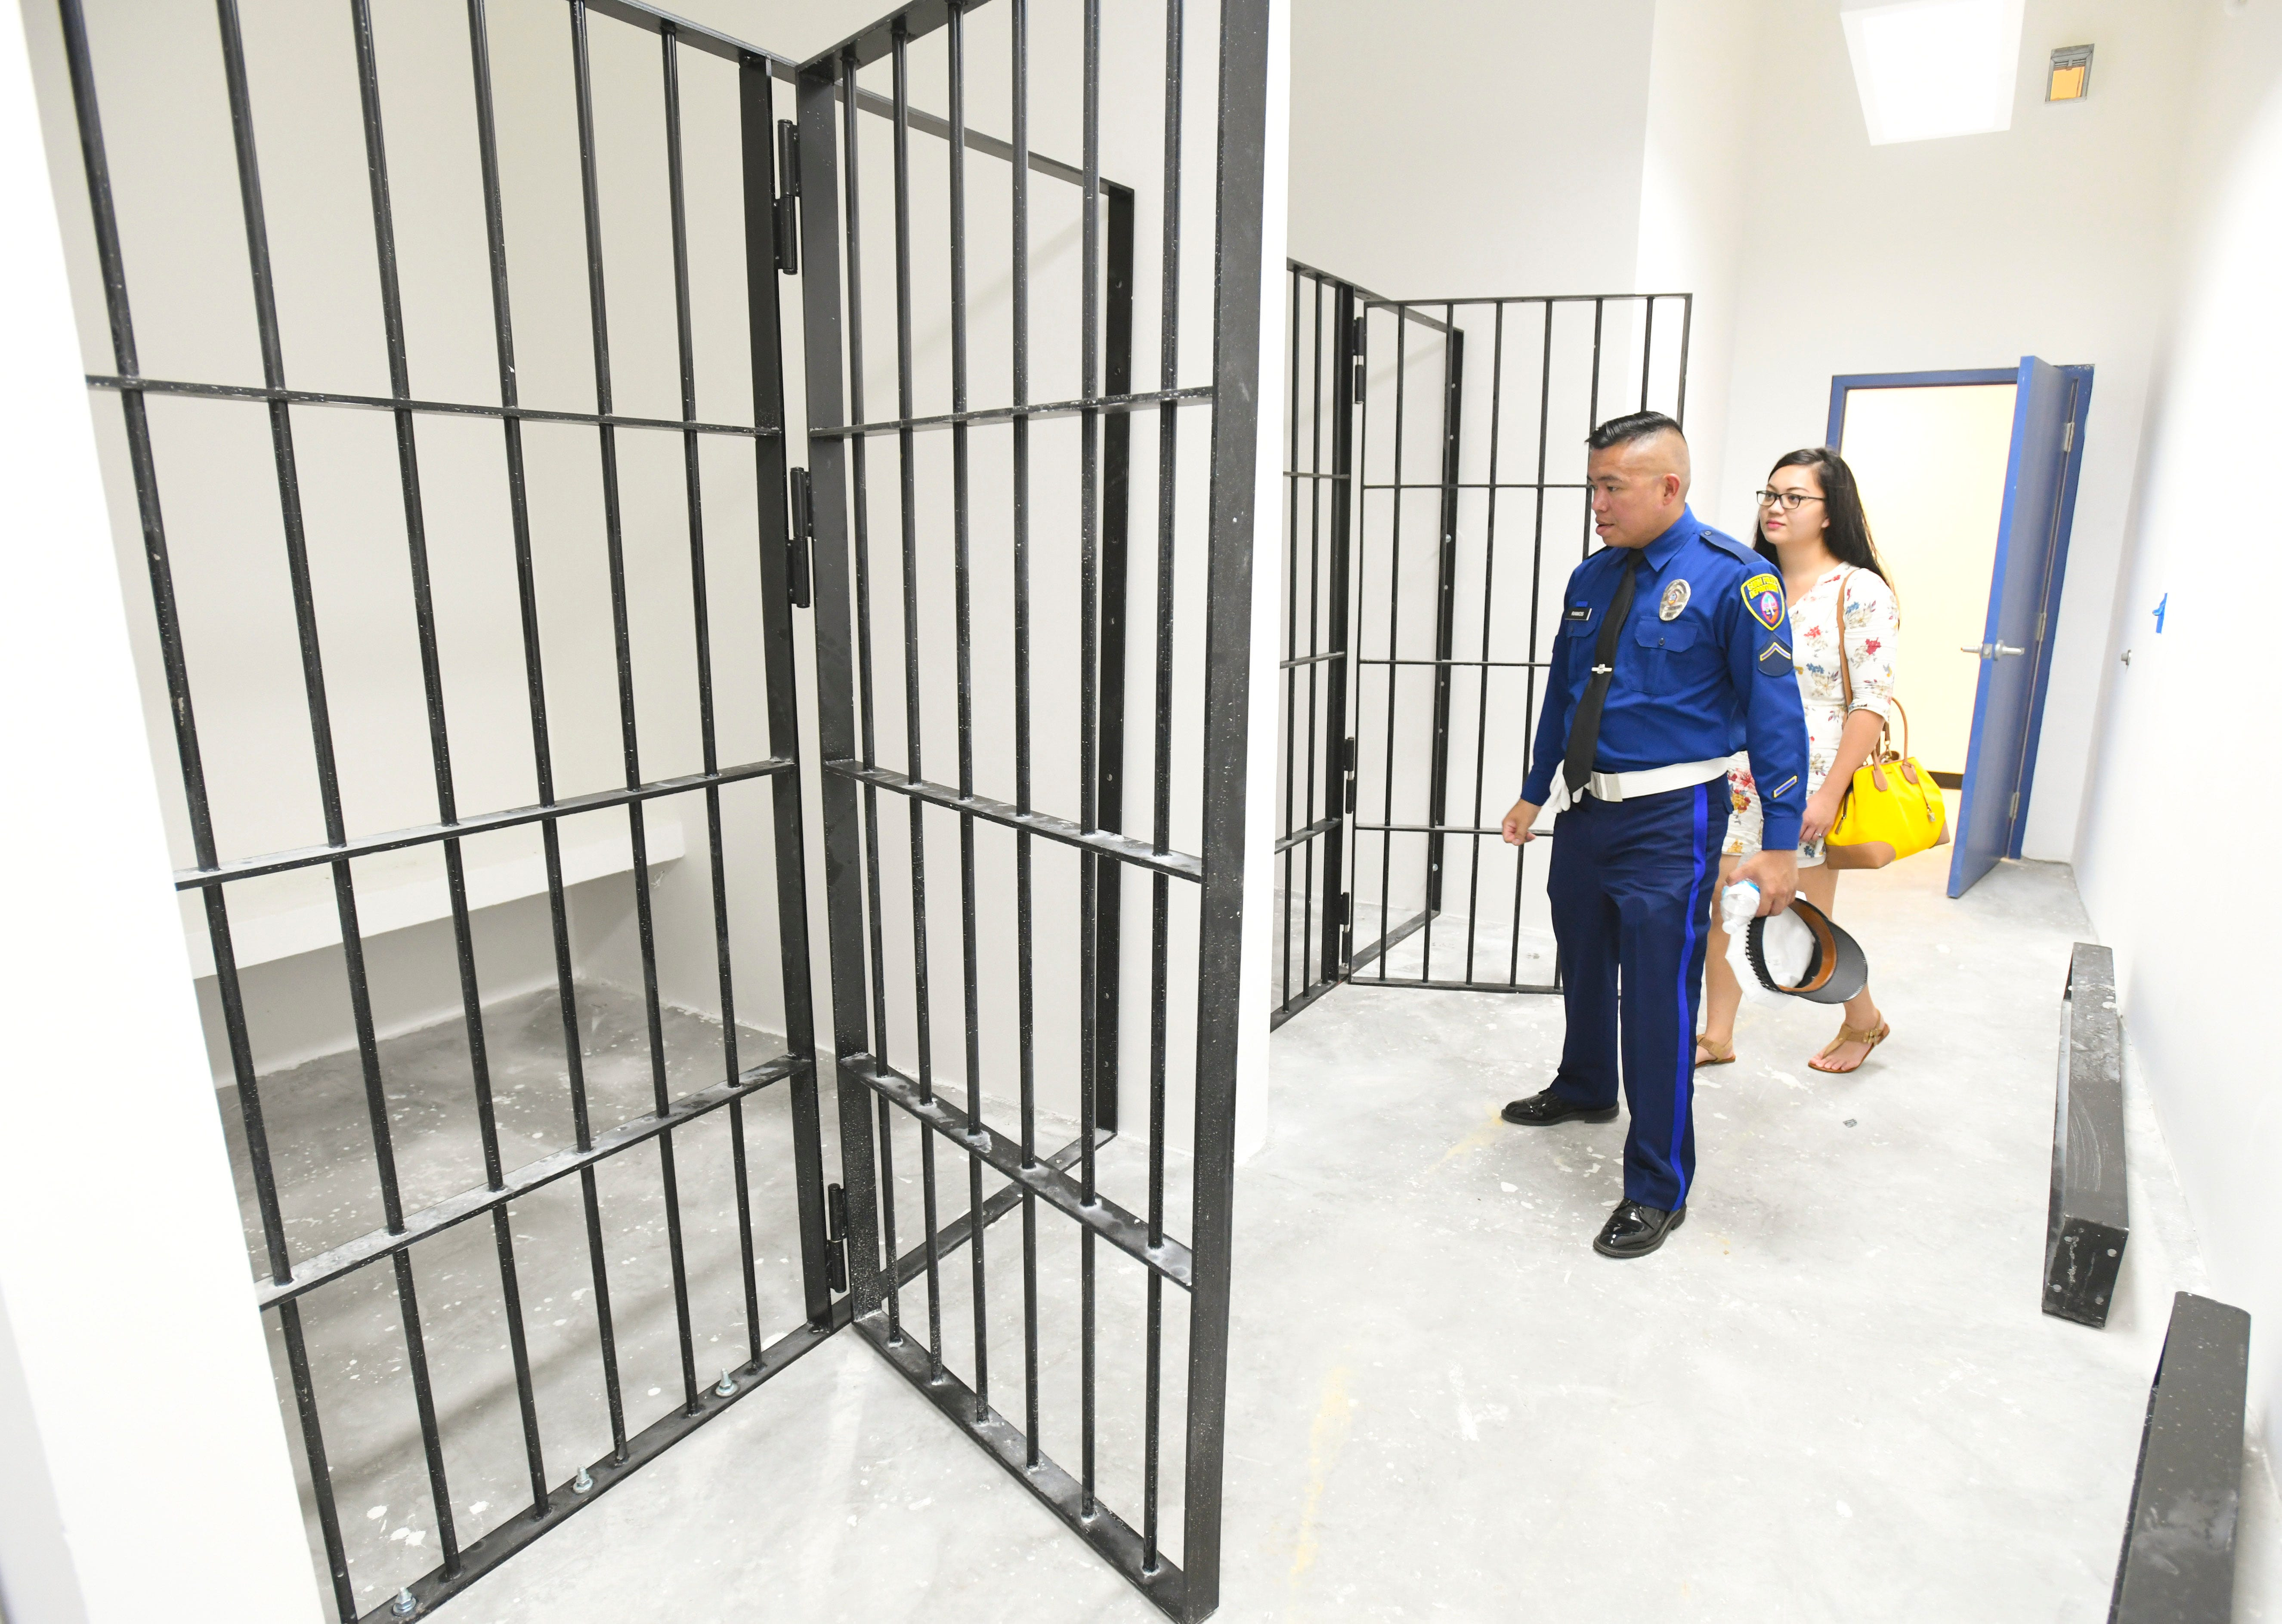 Police officer M.A. Ramos and a guest check out the holding cells still under construction within the Guam Police Department's new Central Precinct Command in Sinajana on Thursday, June 20, 2019. A ribbon cutting ceremony was held earlier to celebrate the opening of the facility.